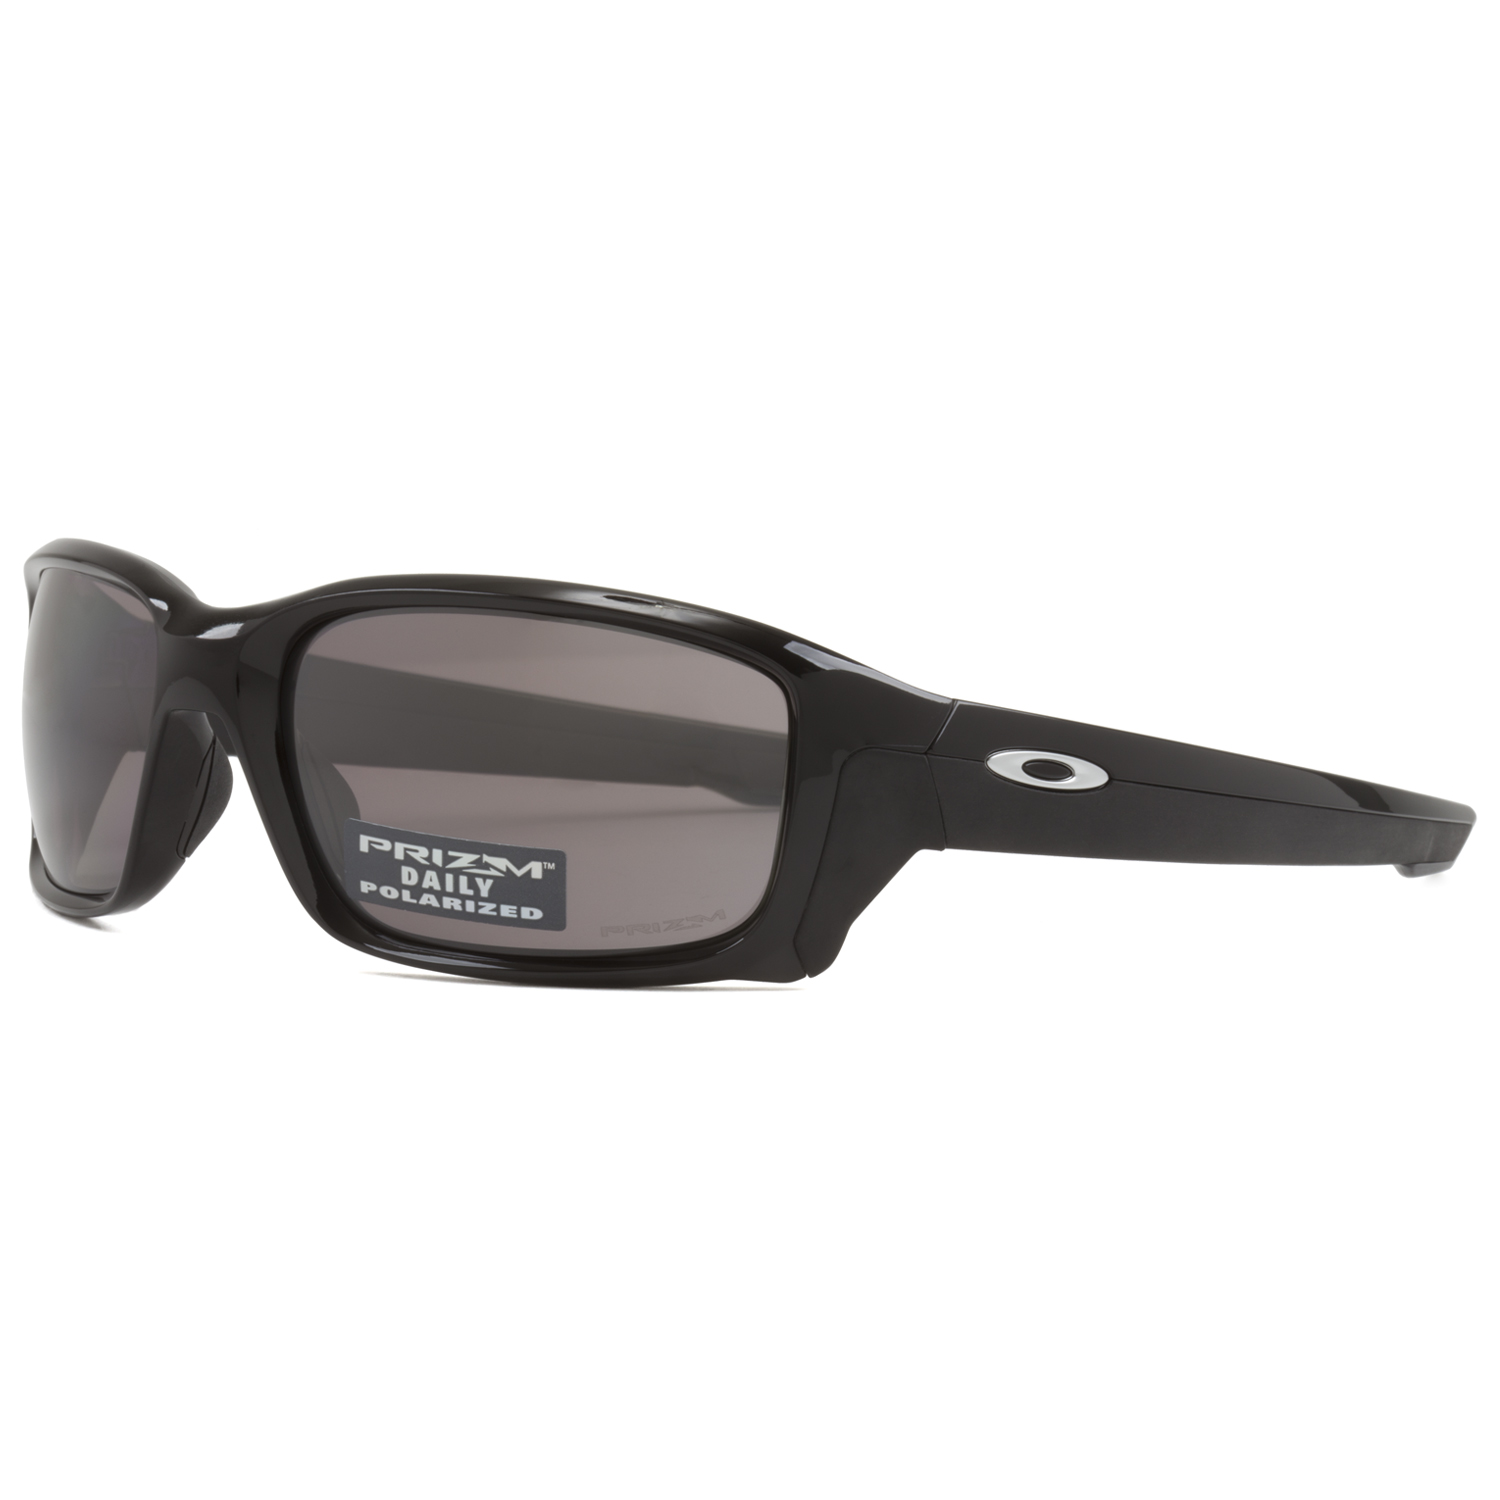 1ed99b0fa1 Details about Oakley Straightlink OO9331-07 Sunglasses Polished Black    Prizm Polar